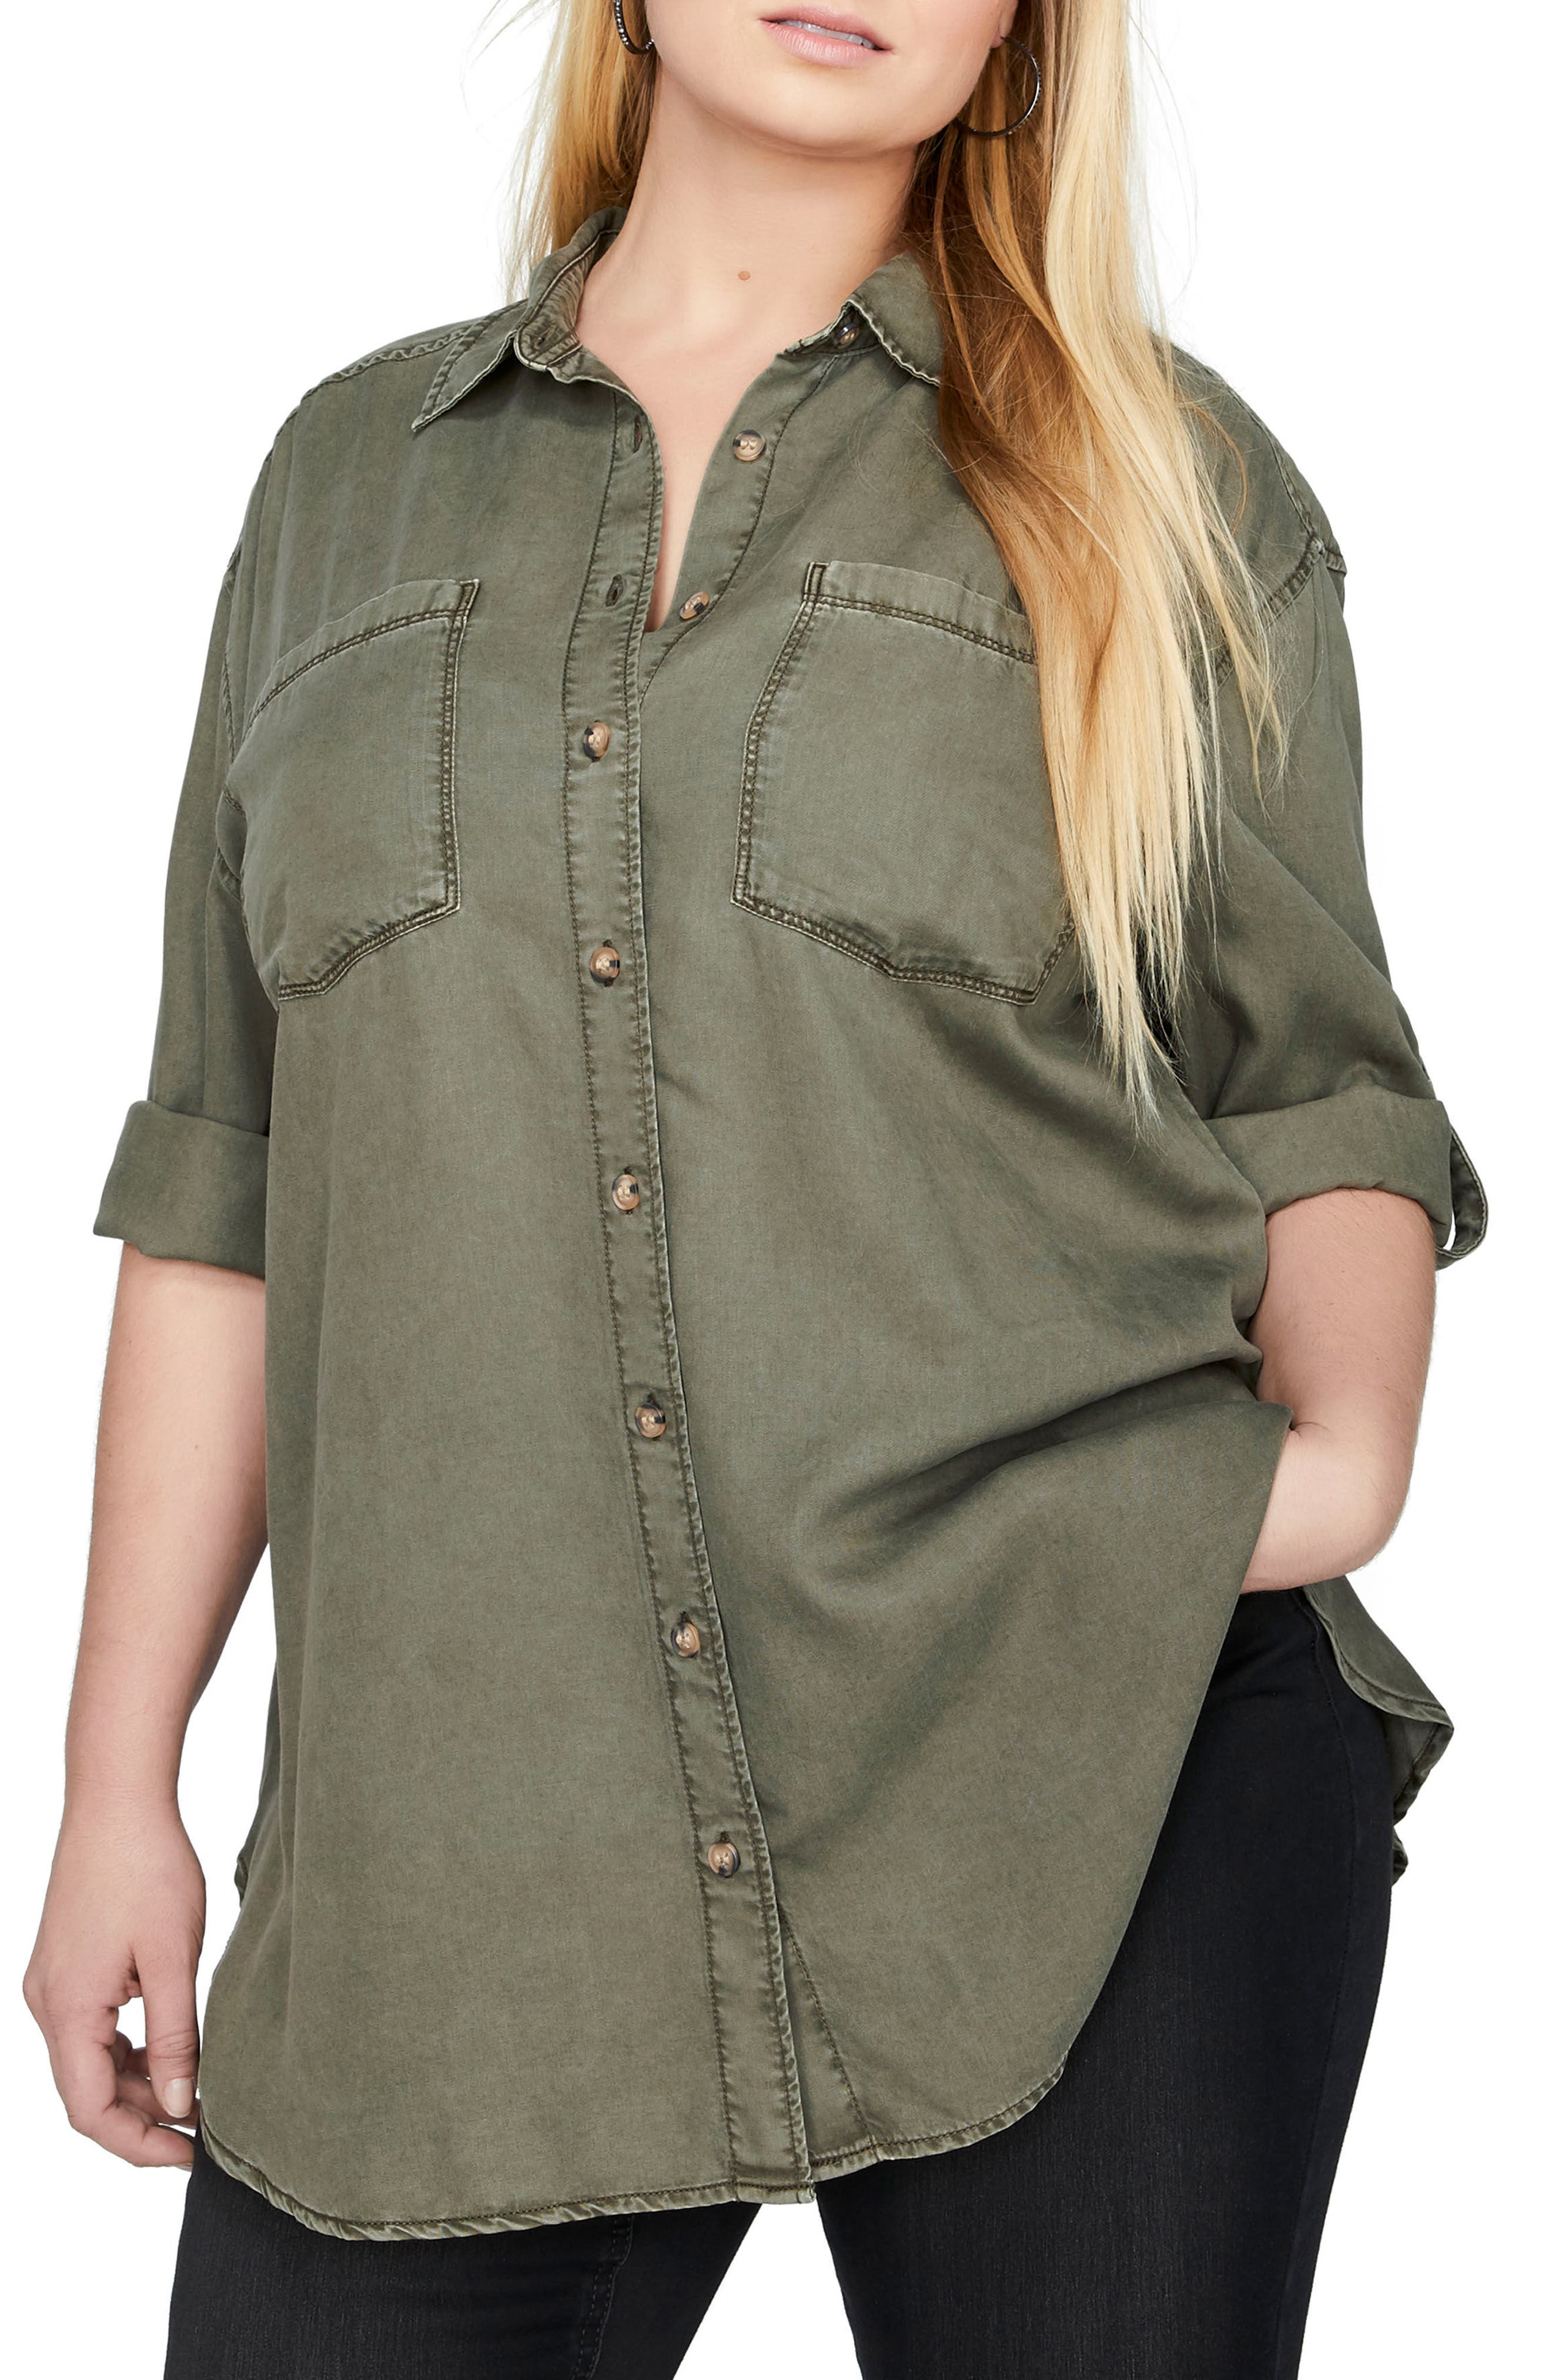 ADDITION ELLE LOVE AND LEGEND Tunic Shirt (Plus Size)